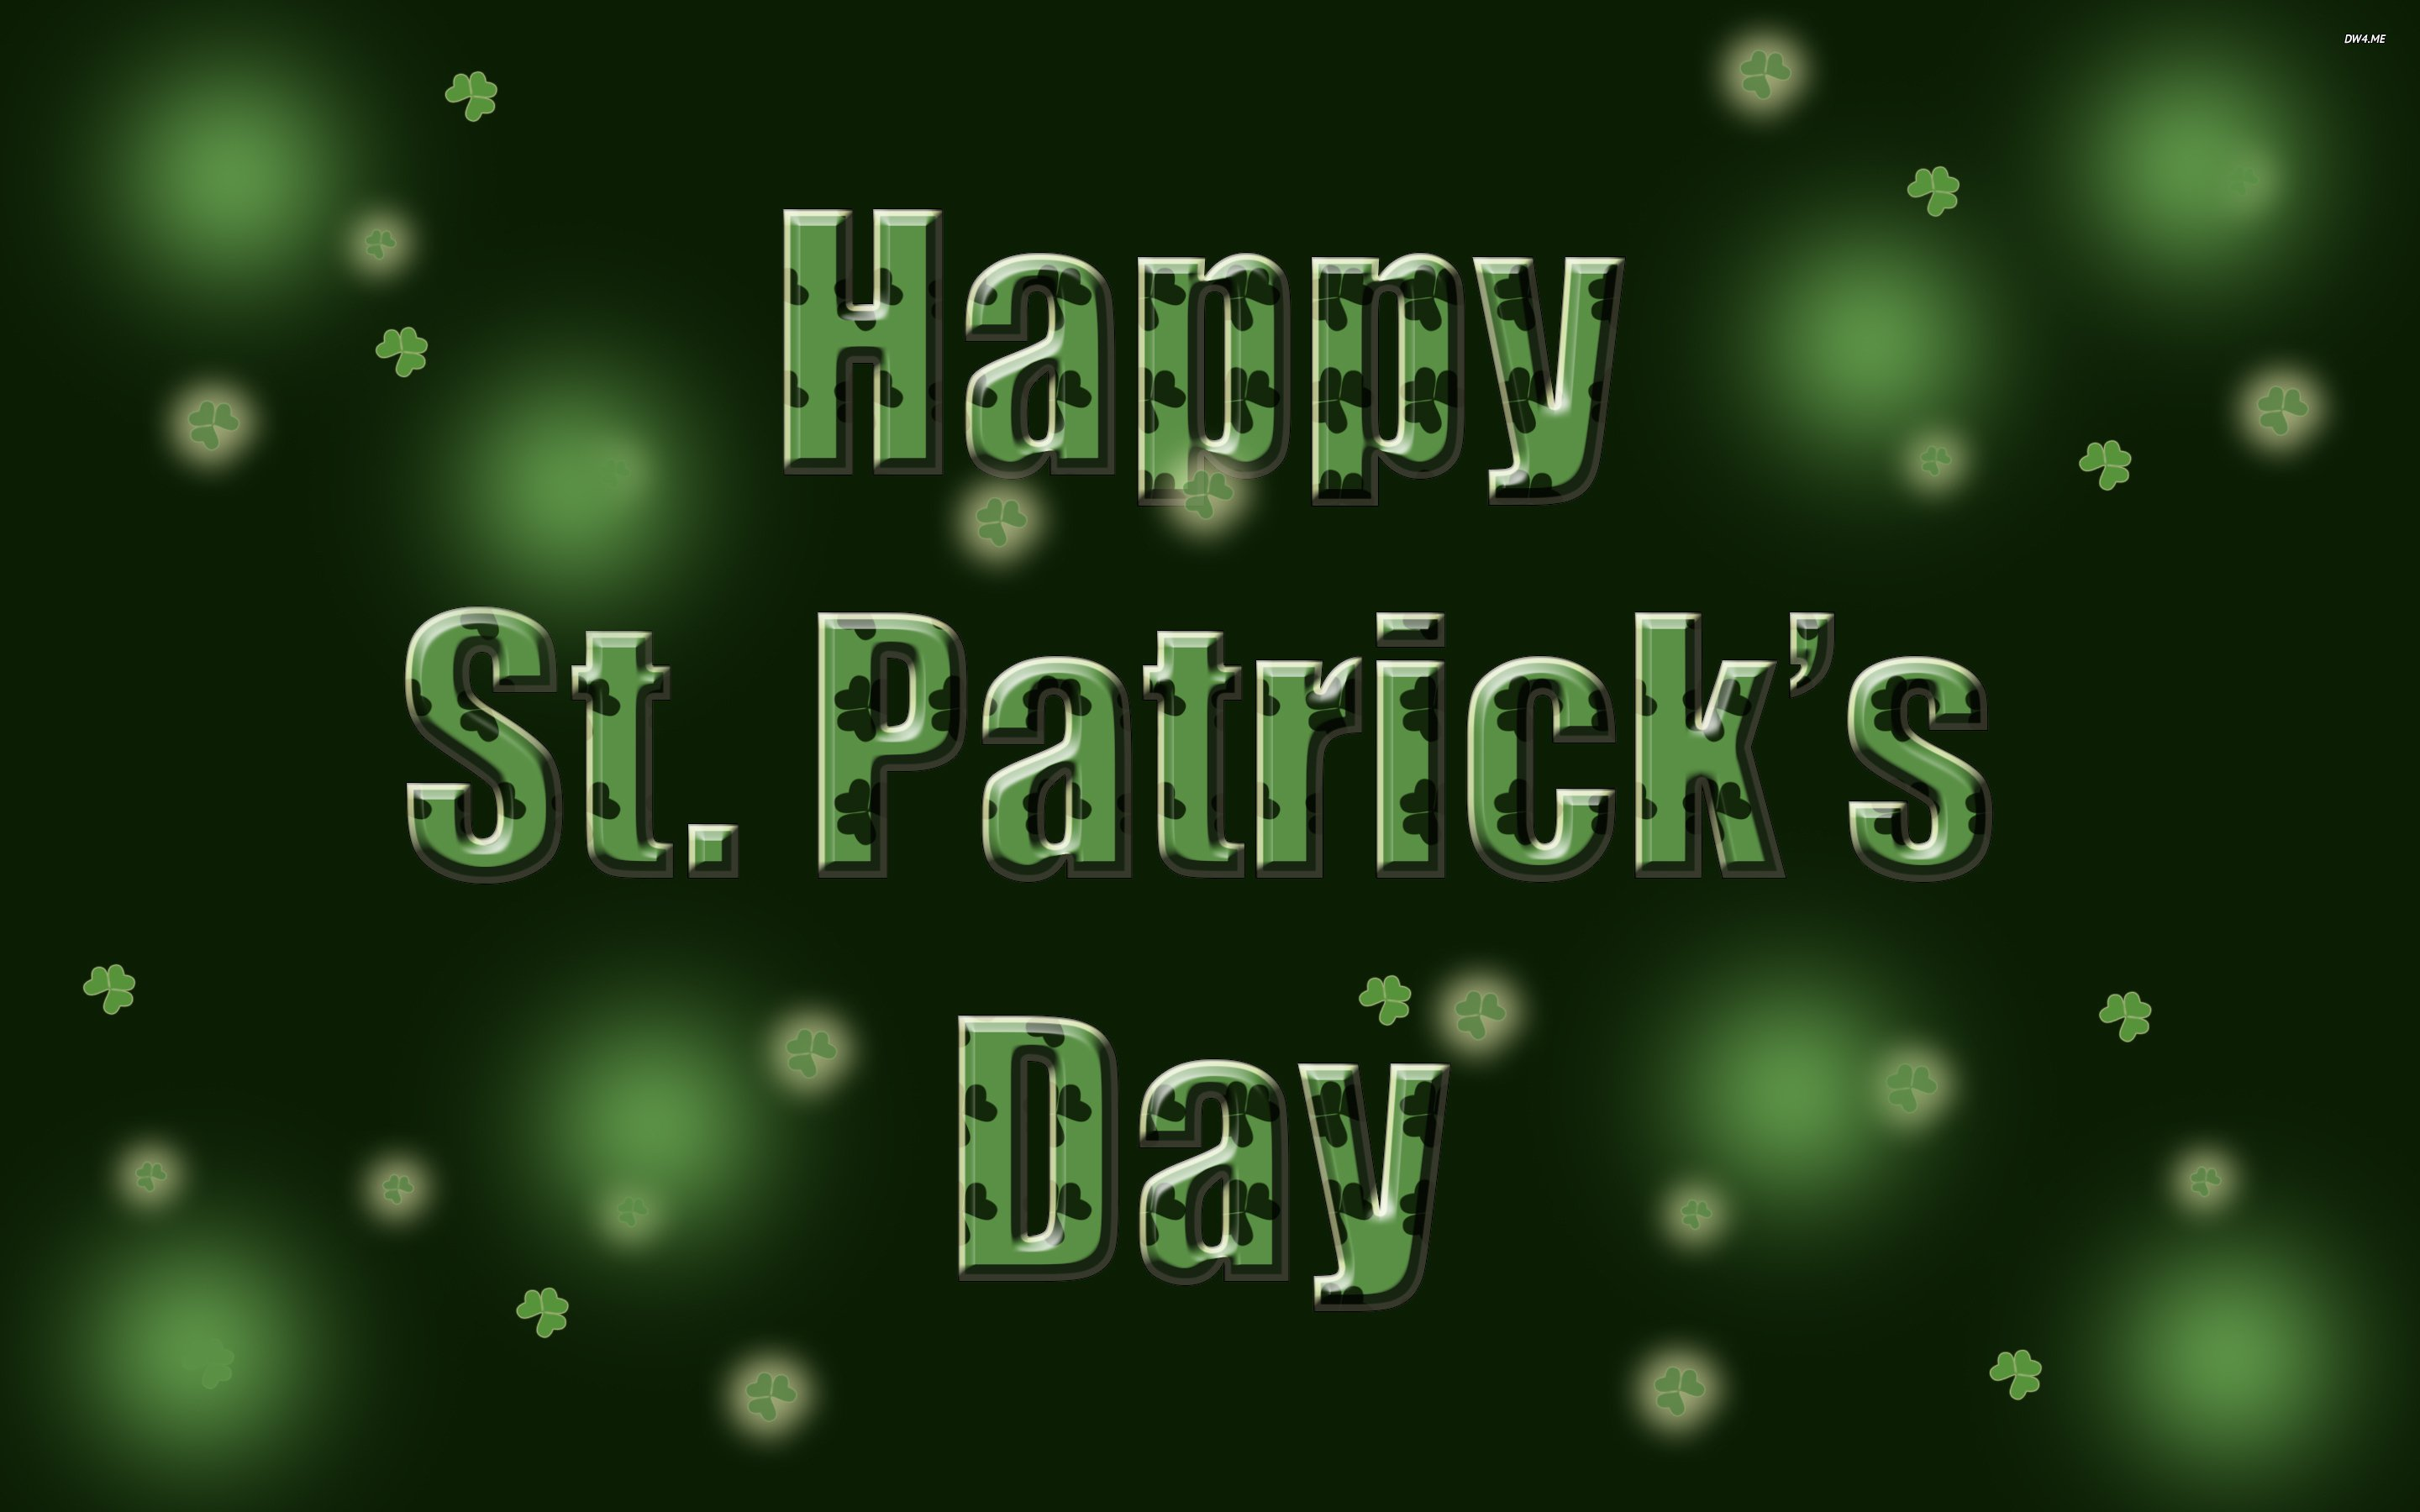 Happy St Patricks Day wallpaper   Holiday wallpapers   2620 2880x1800